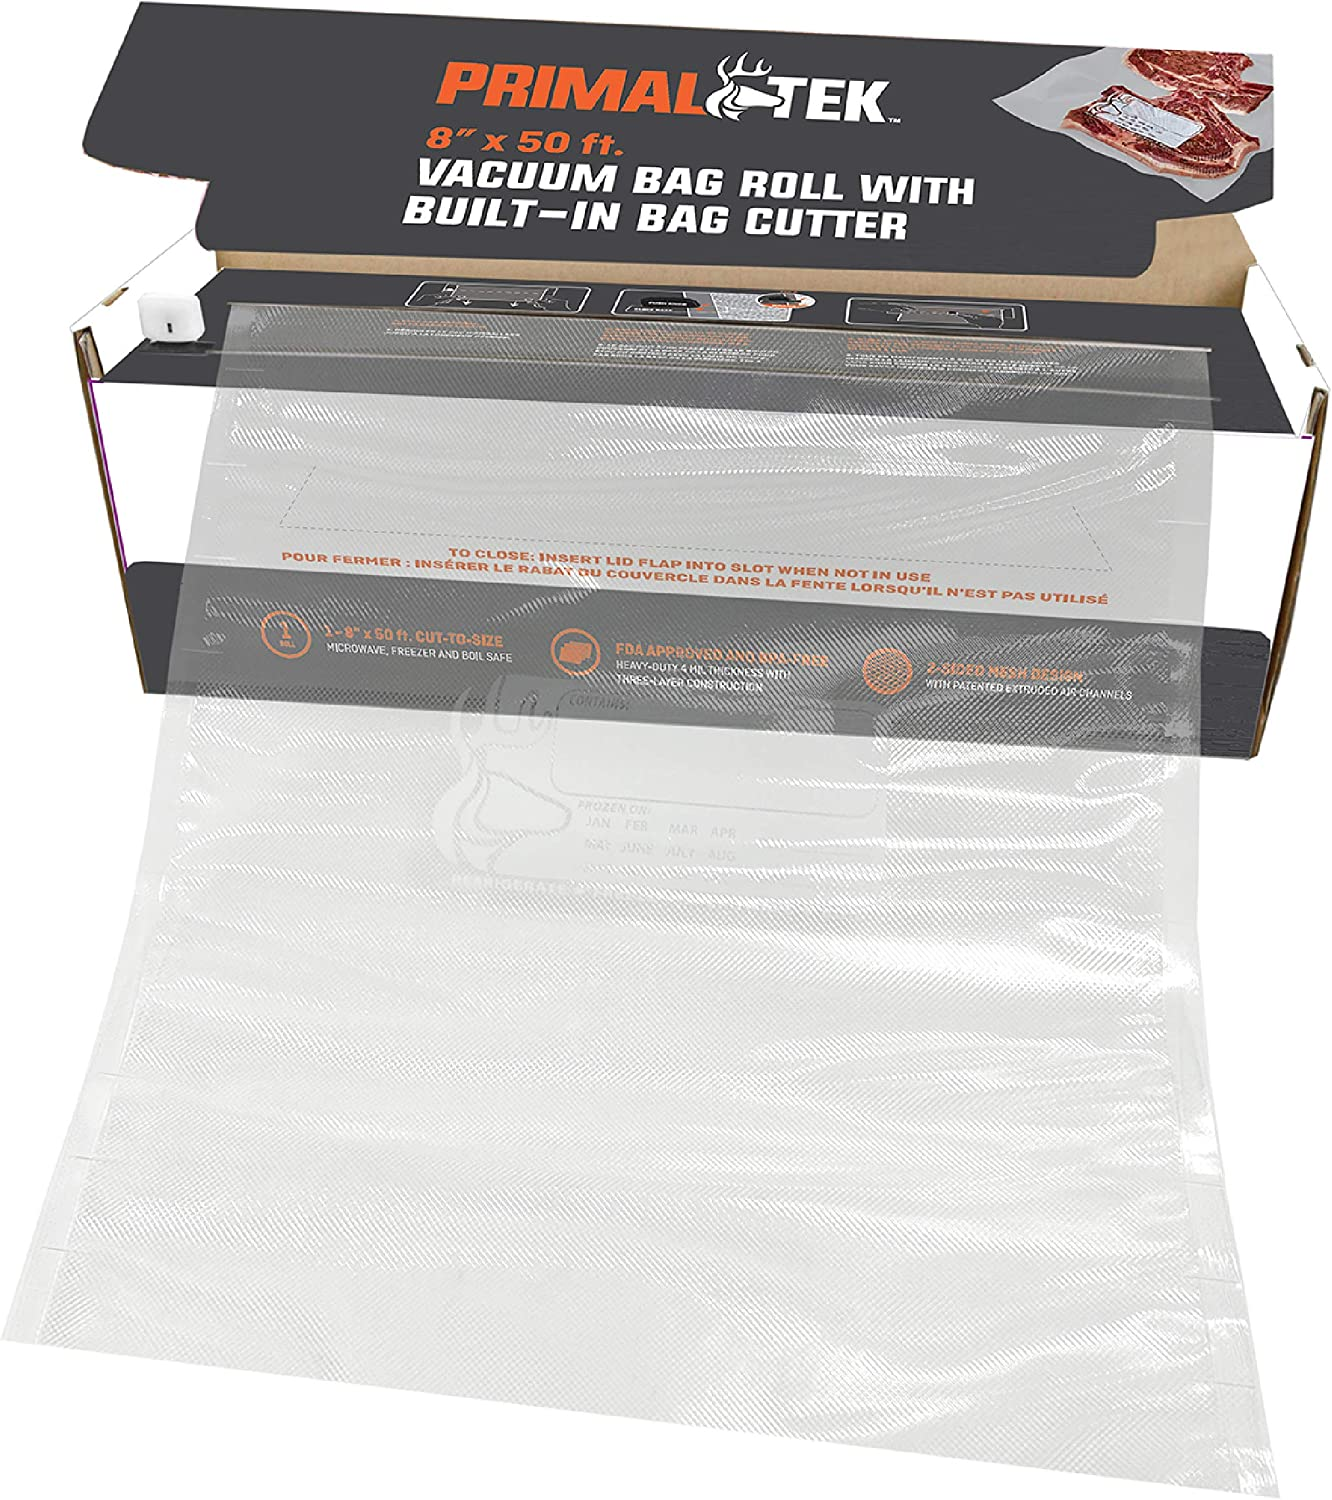 "PrimalTek Vacuum Bag Roll Cutter Box - User Friendly for Food Saver – Microwave, Freezer and Boil Safe, BPA-Free, Compatible with Most Vacuum Seal Machines (8"" x 50')"